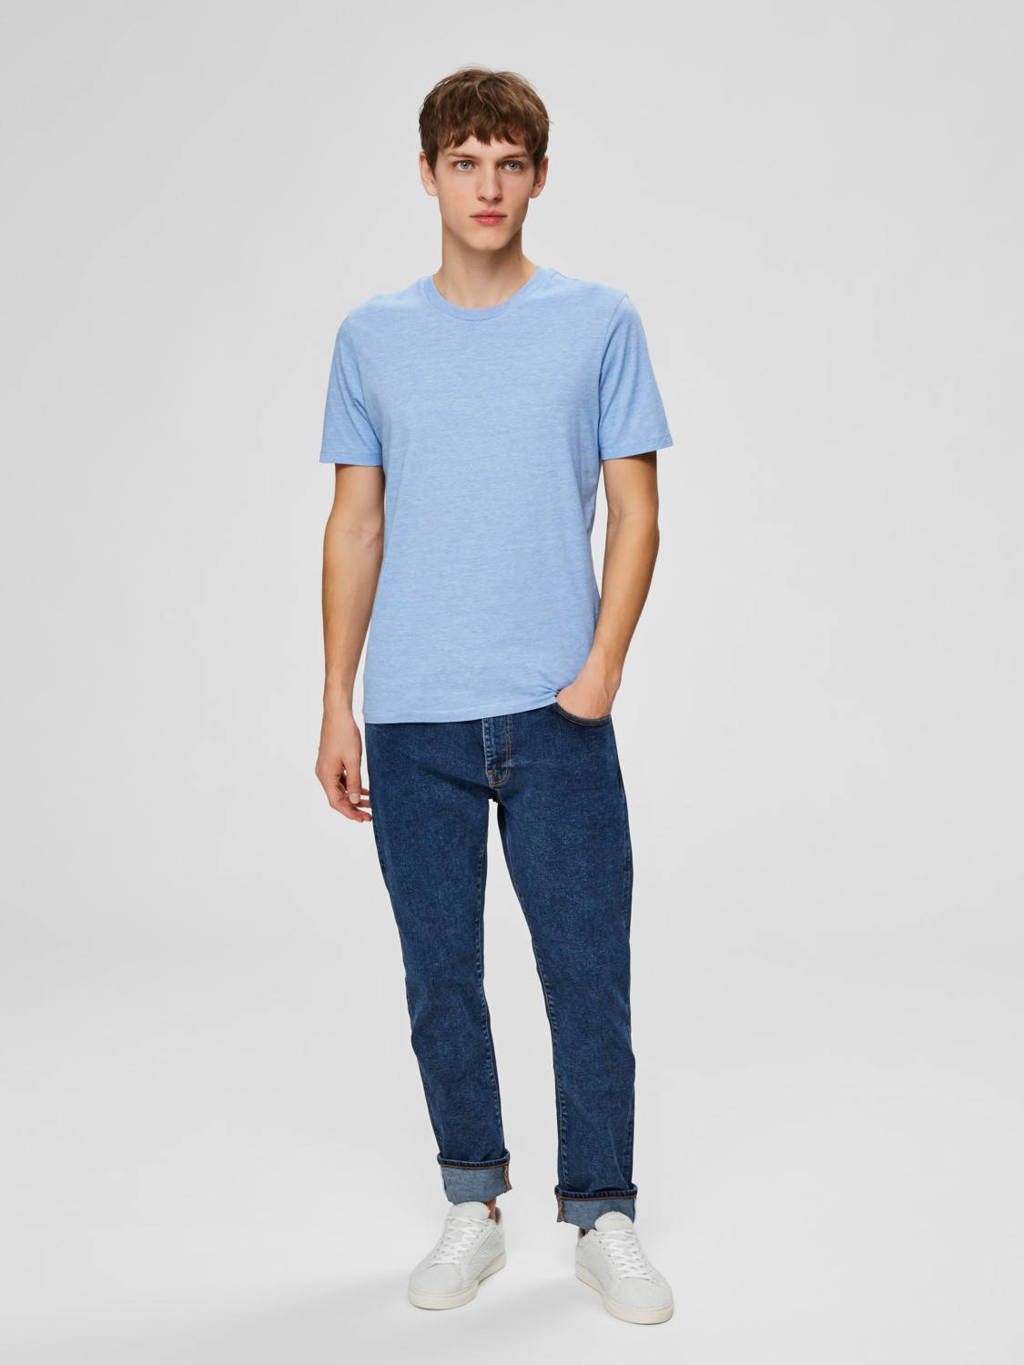 SELECTED HOMME T-shirt blauw, Blauw